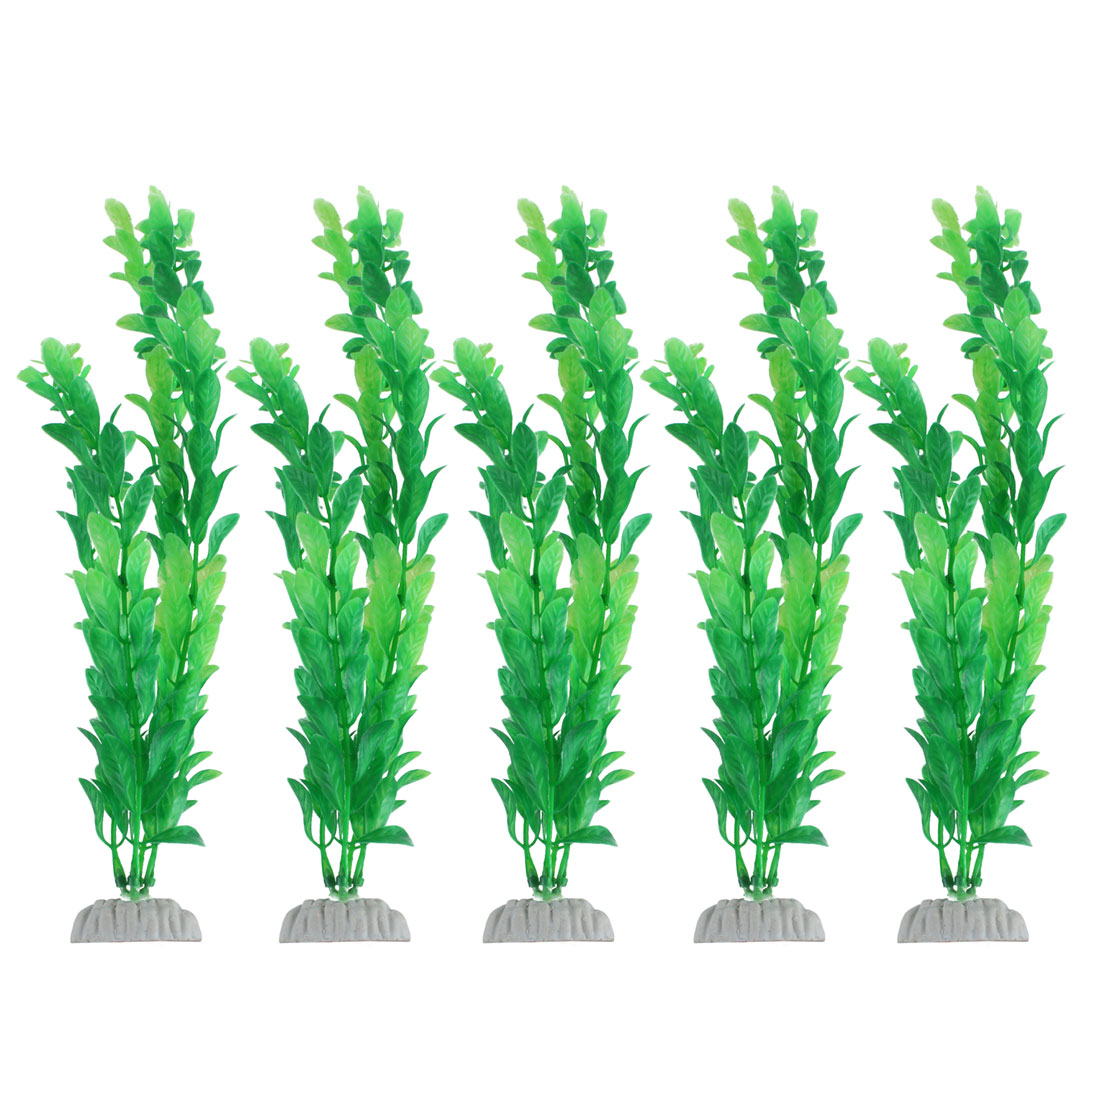 Fishbowl Aquarium Plastic Artificial Underwater Plant Grass Ornament Green 13 Inch Height 5pcs